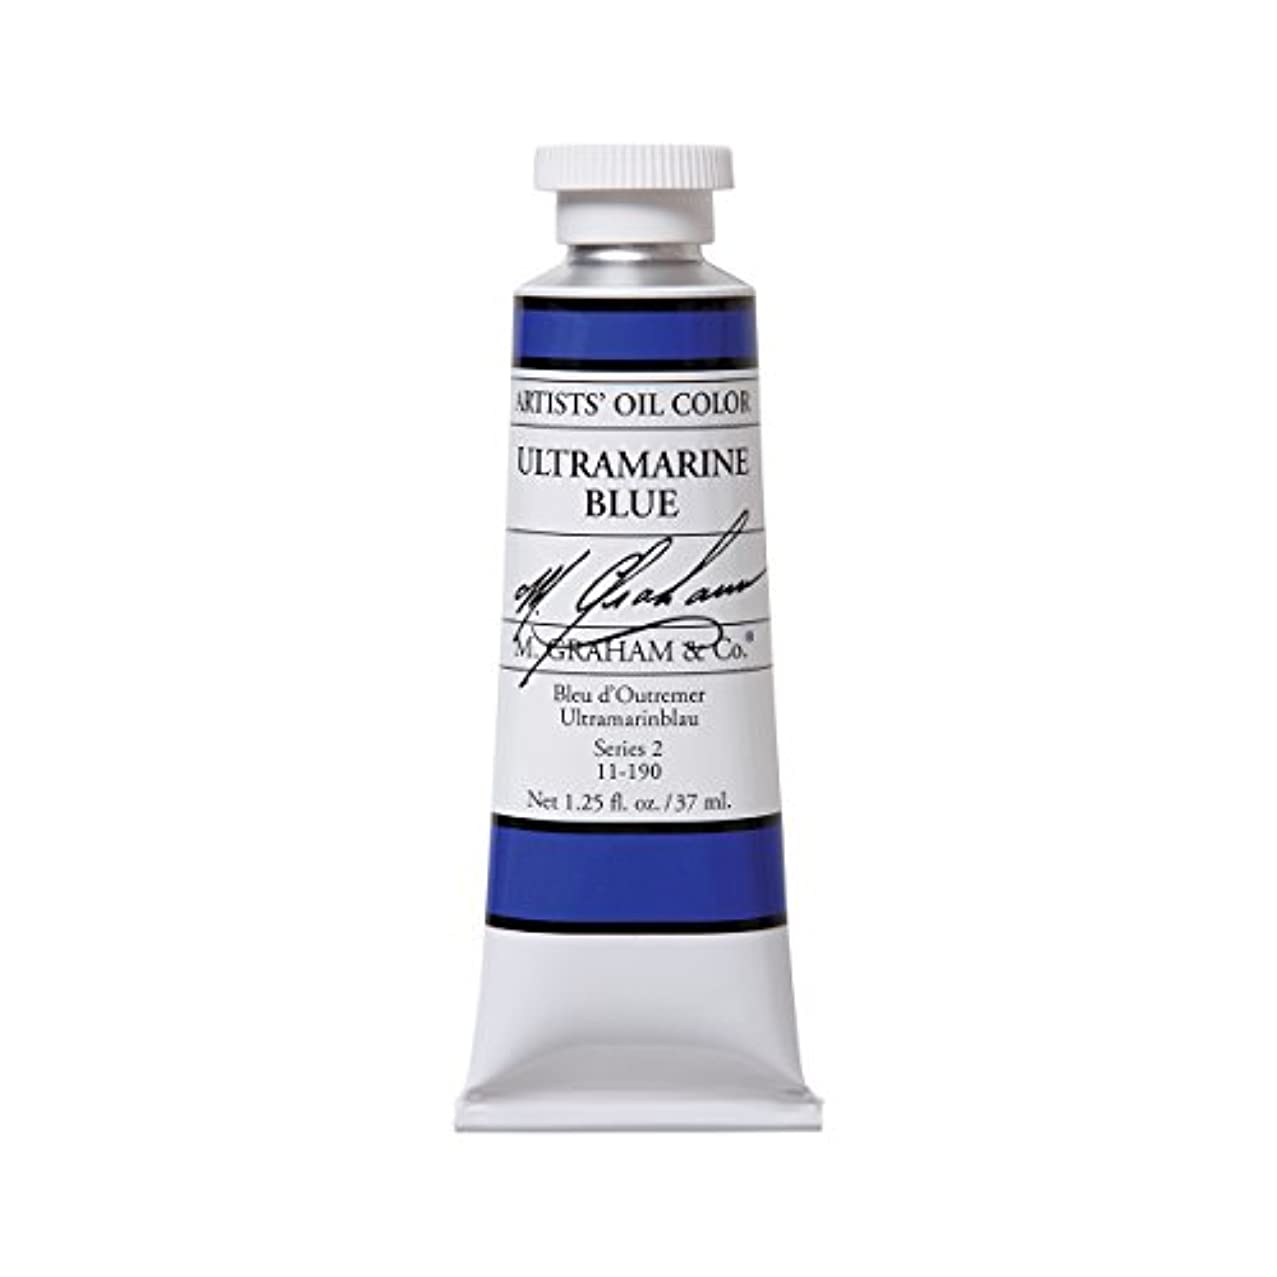 M. Graham Artist Oil Paint Ultramarine Blue 1.25oz/37ml Tube